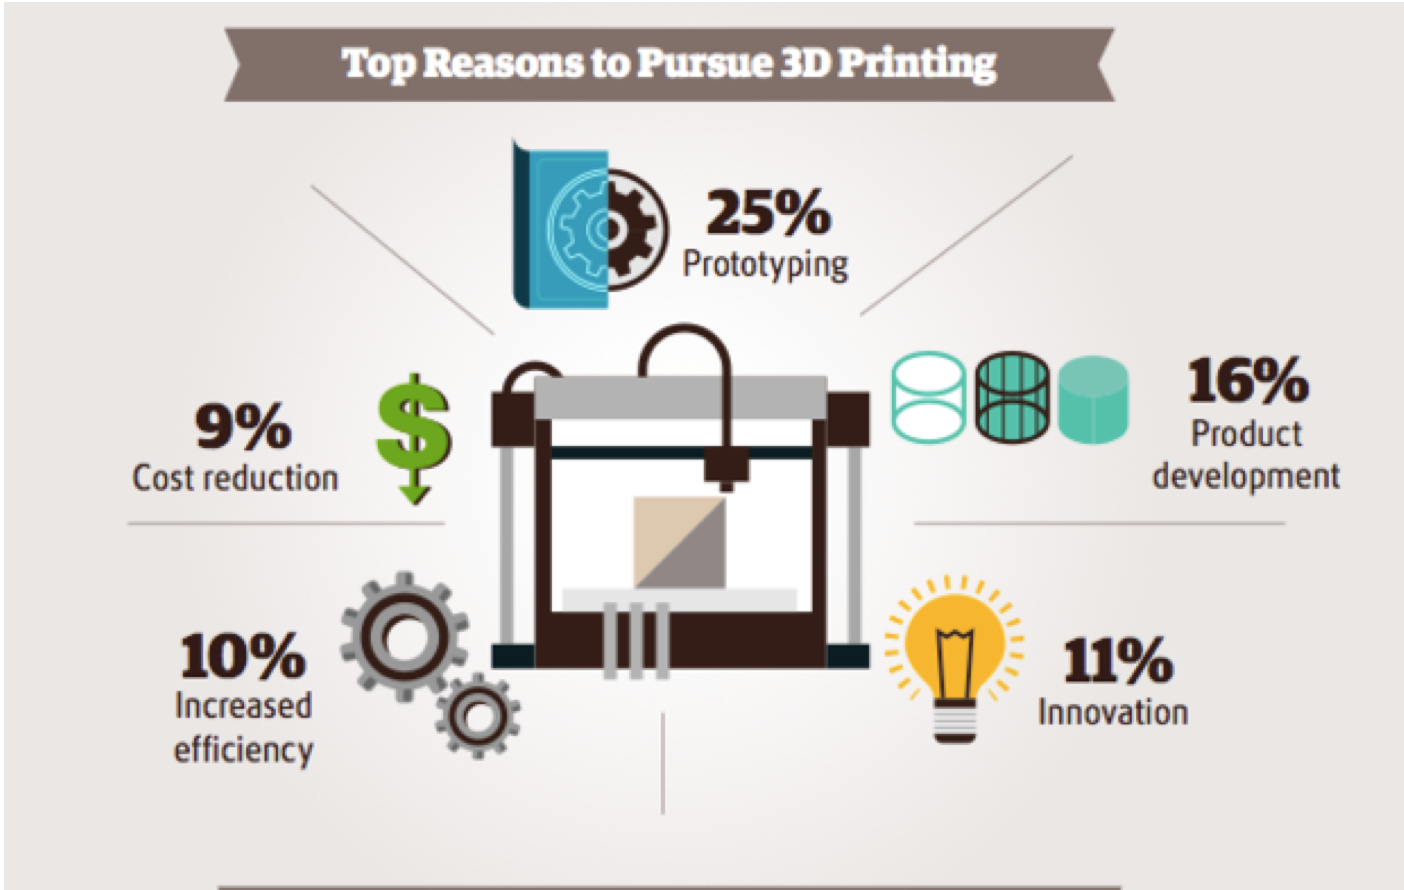 Top reasons to pursue 3d prinitng